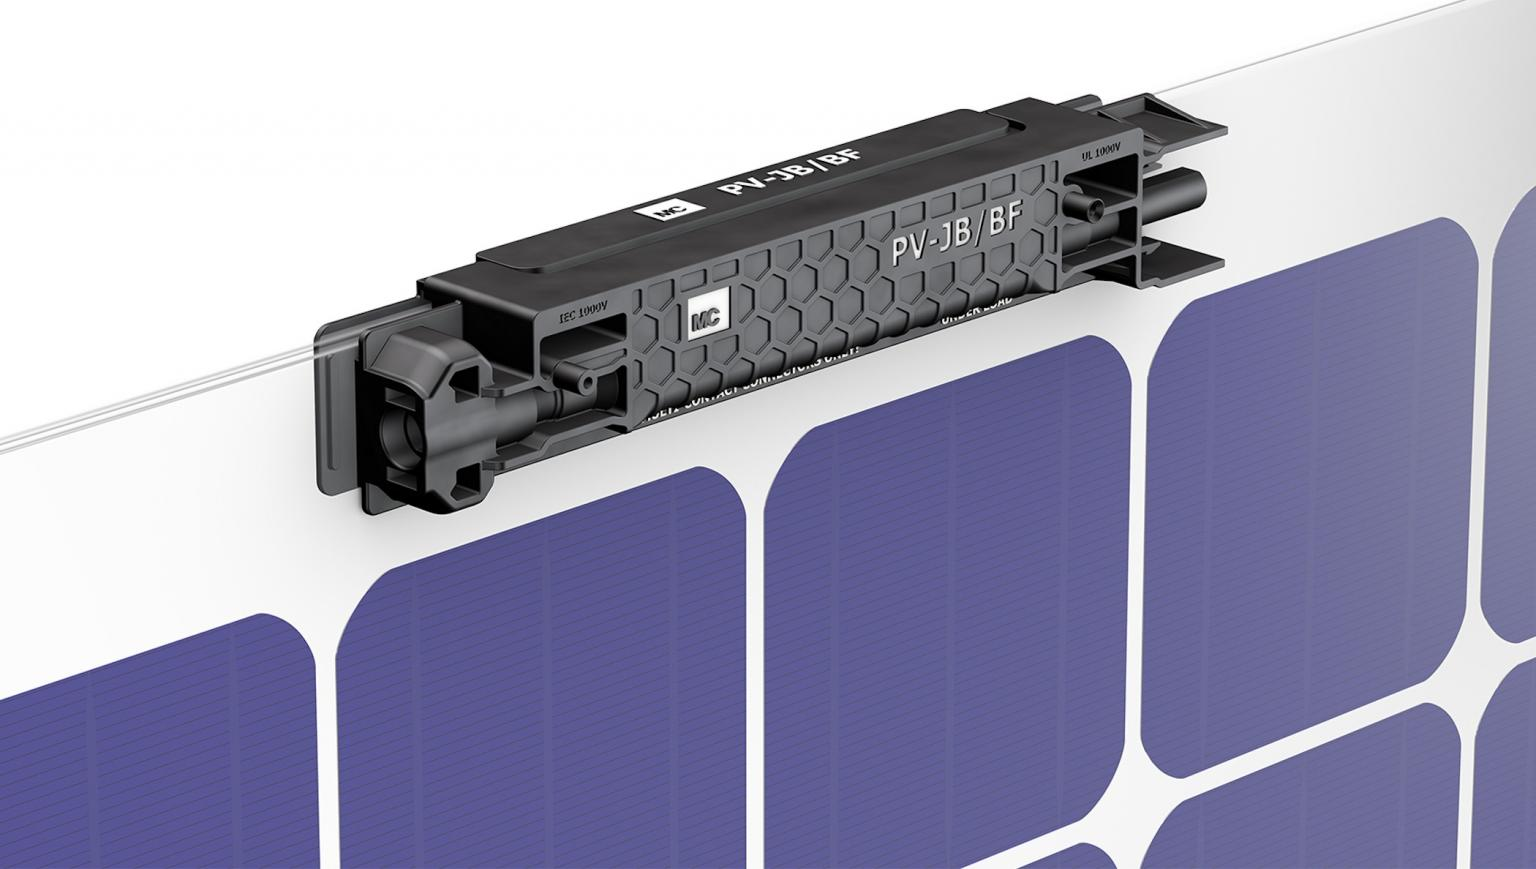 The new PV-JB/BF edge connector for solar panels from Multi-Contact